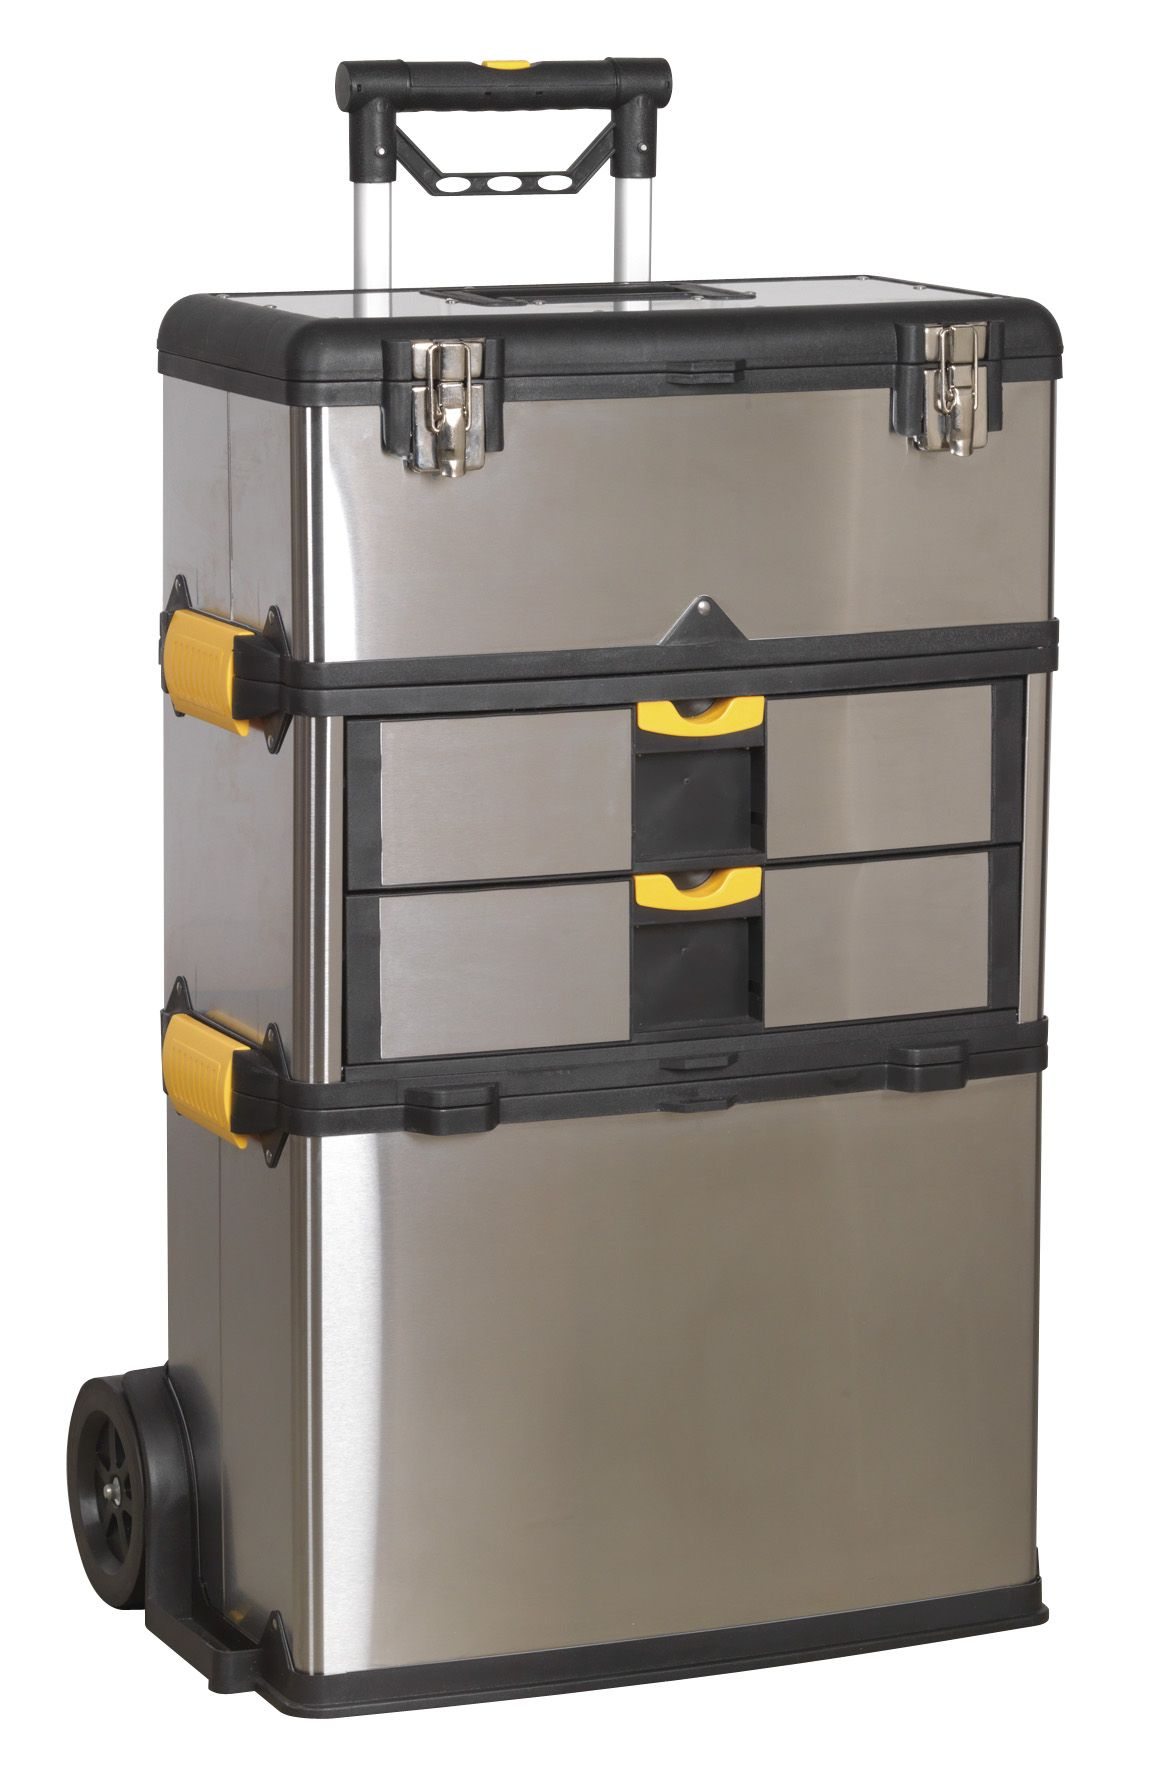 Sealey Mobile Stainless Steel/Composite Toolbox - 3 Compartment